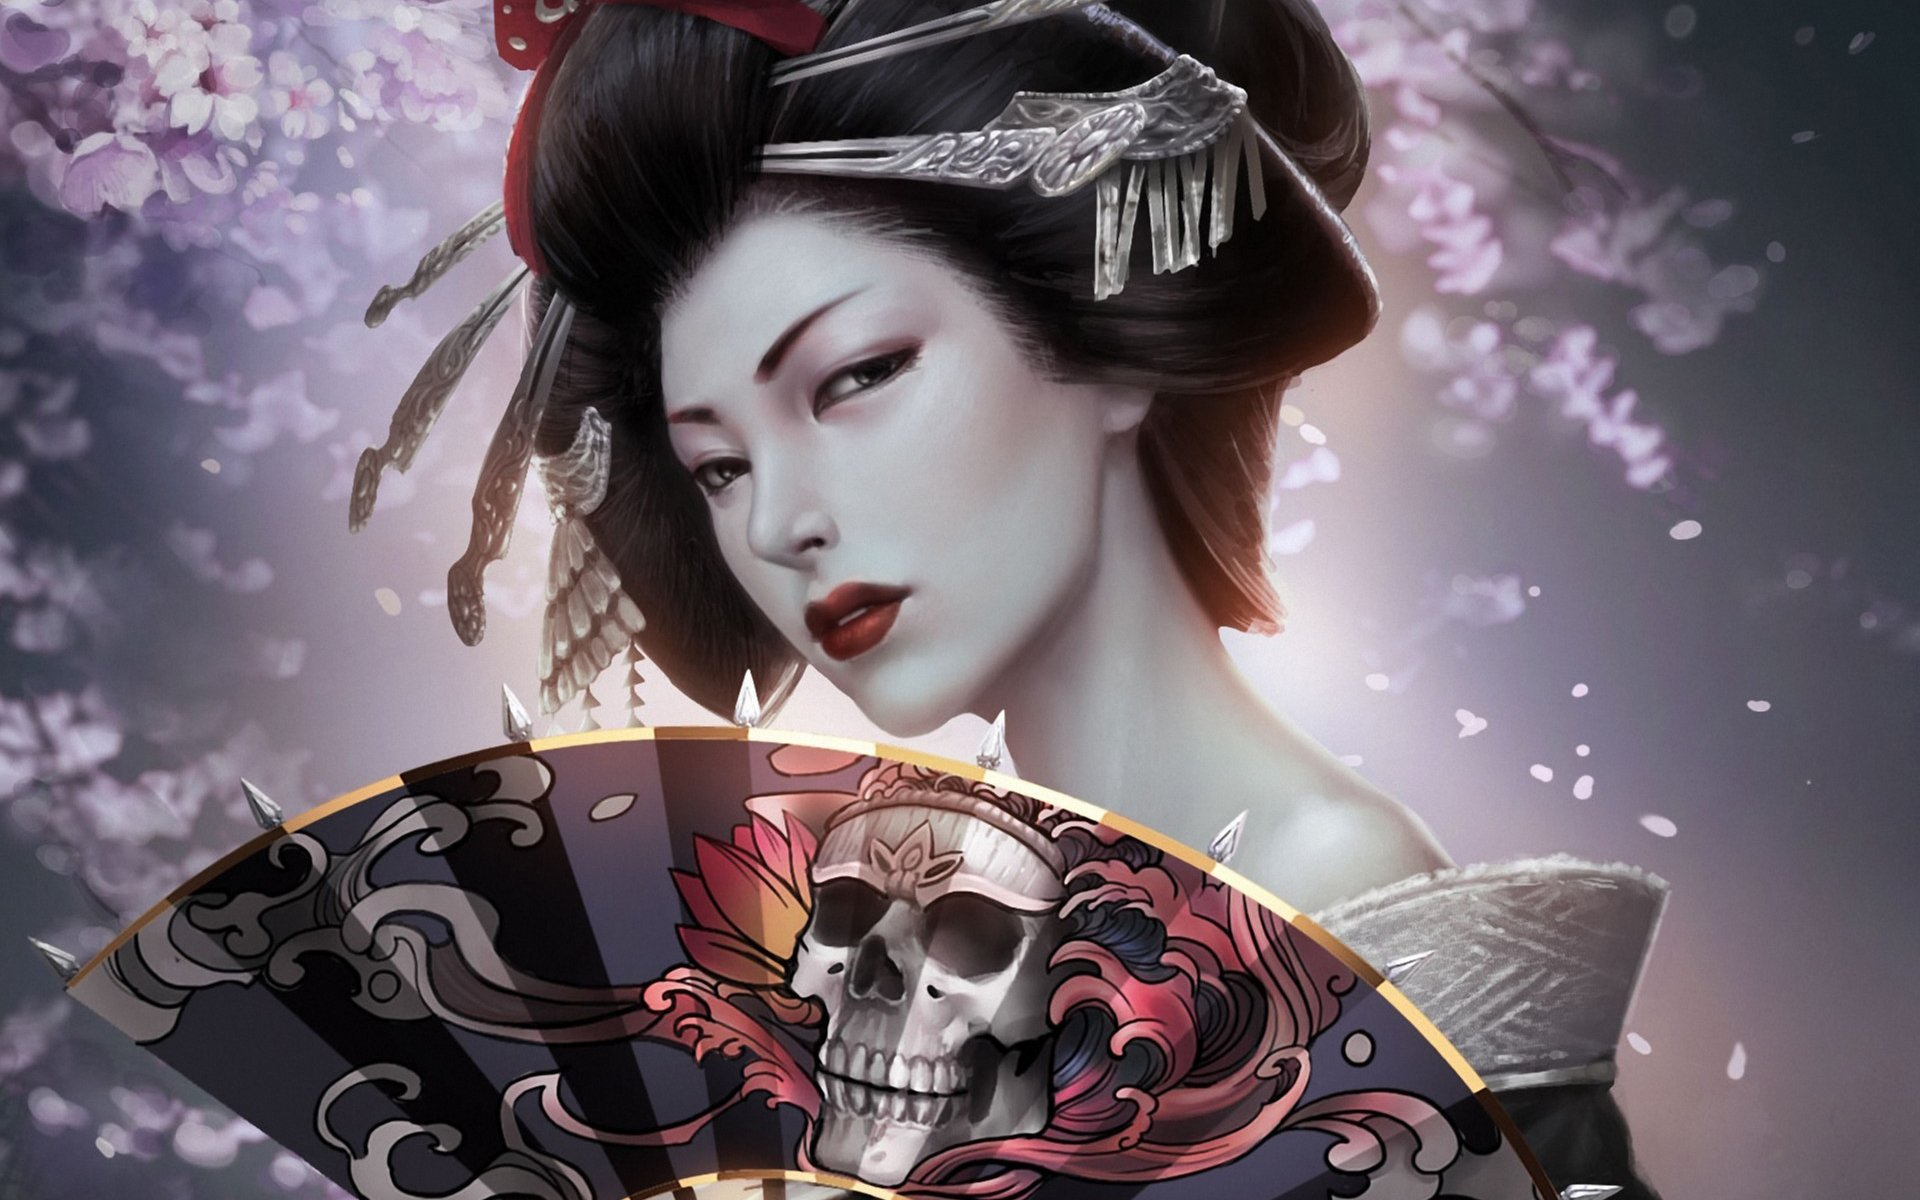 Japanese Girl Geisha Skull Art HD Wallpaper 1920x1200